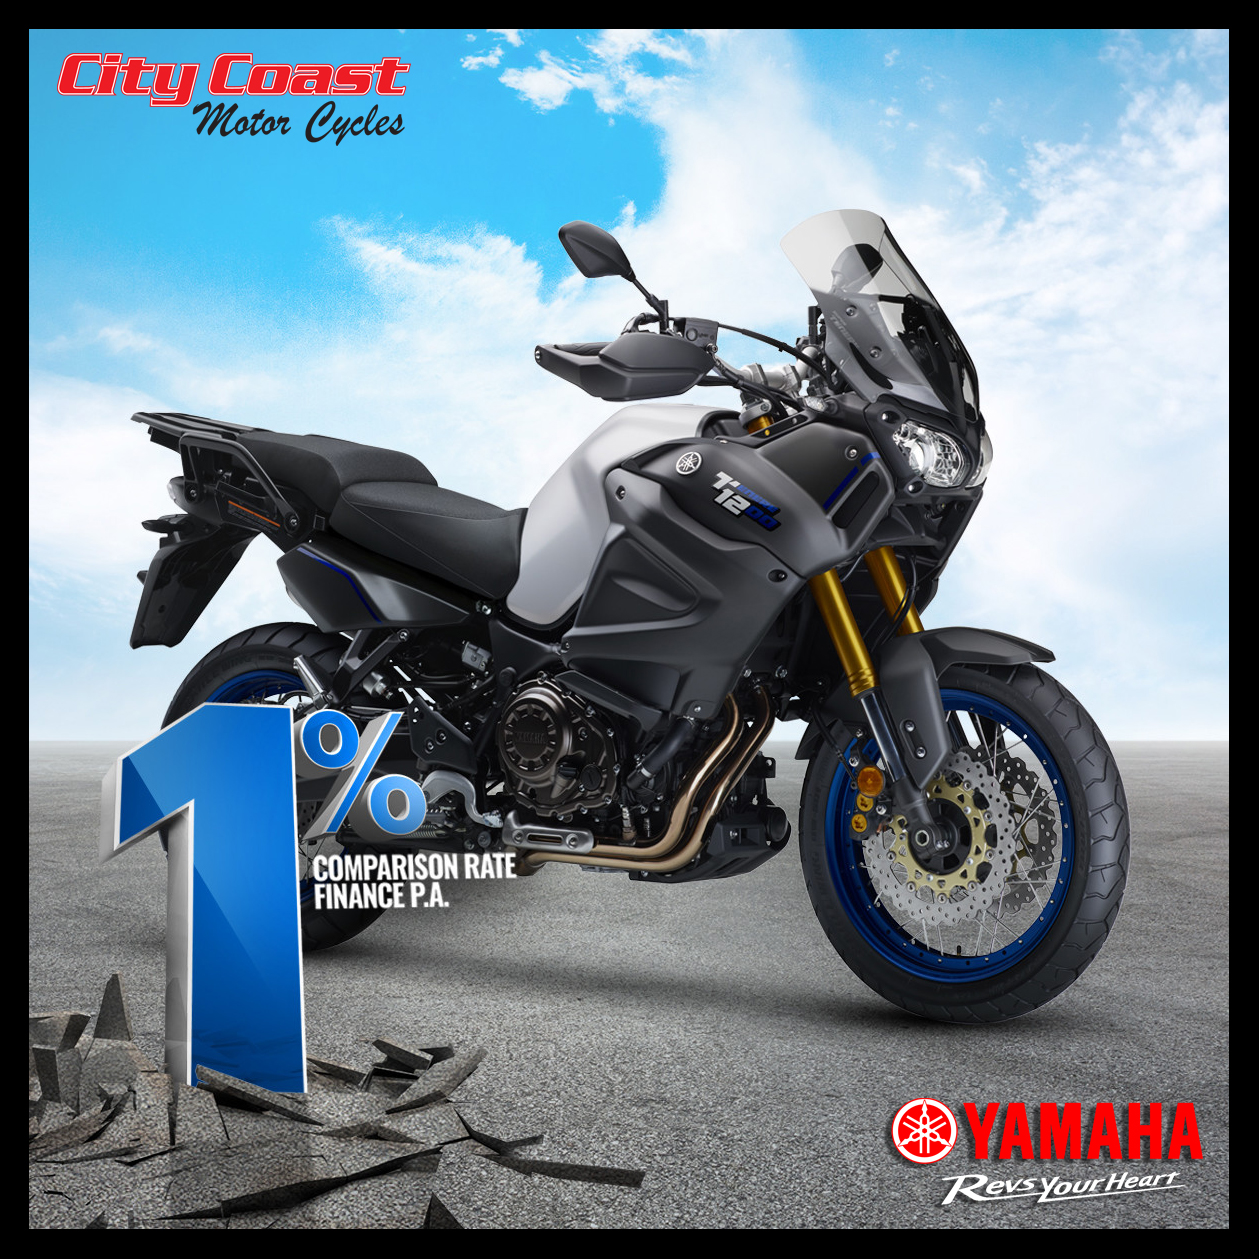 One percent motorcycle finance